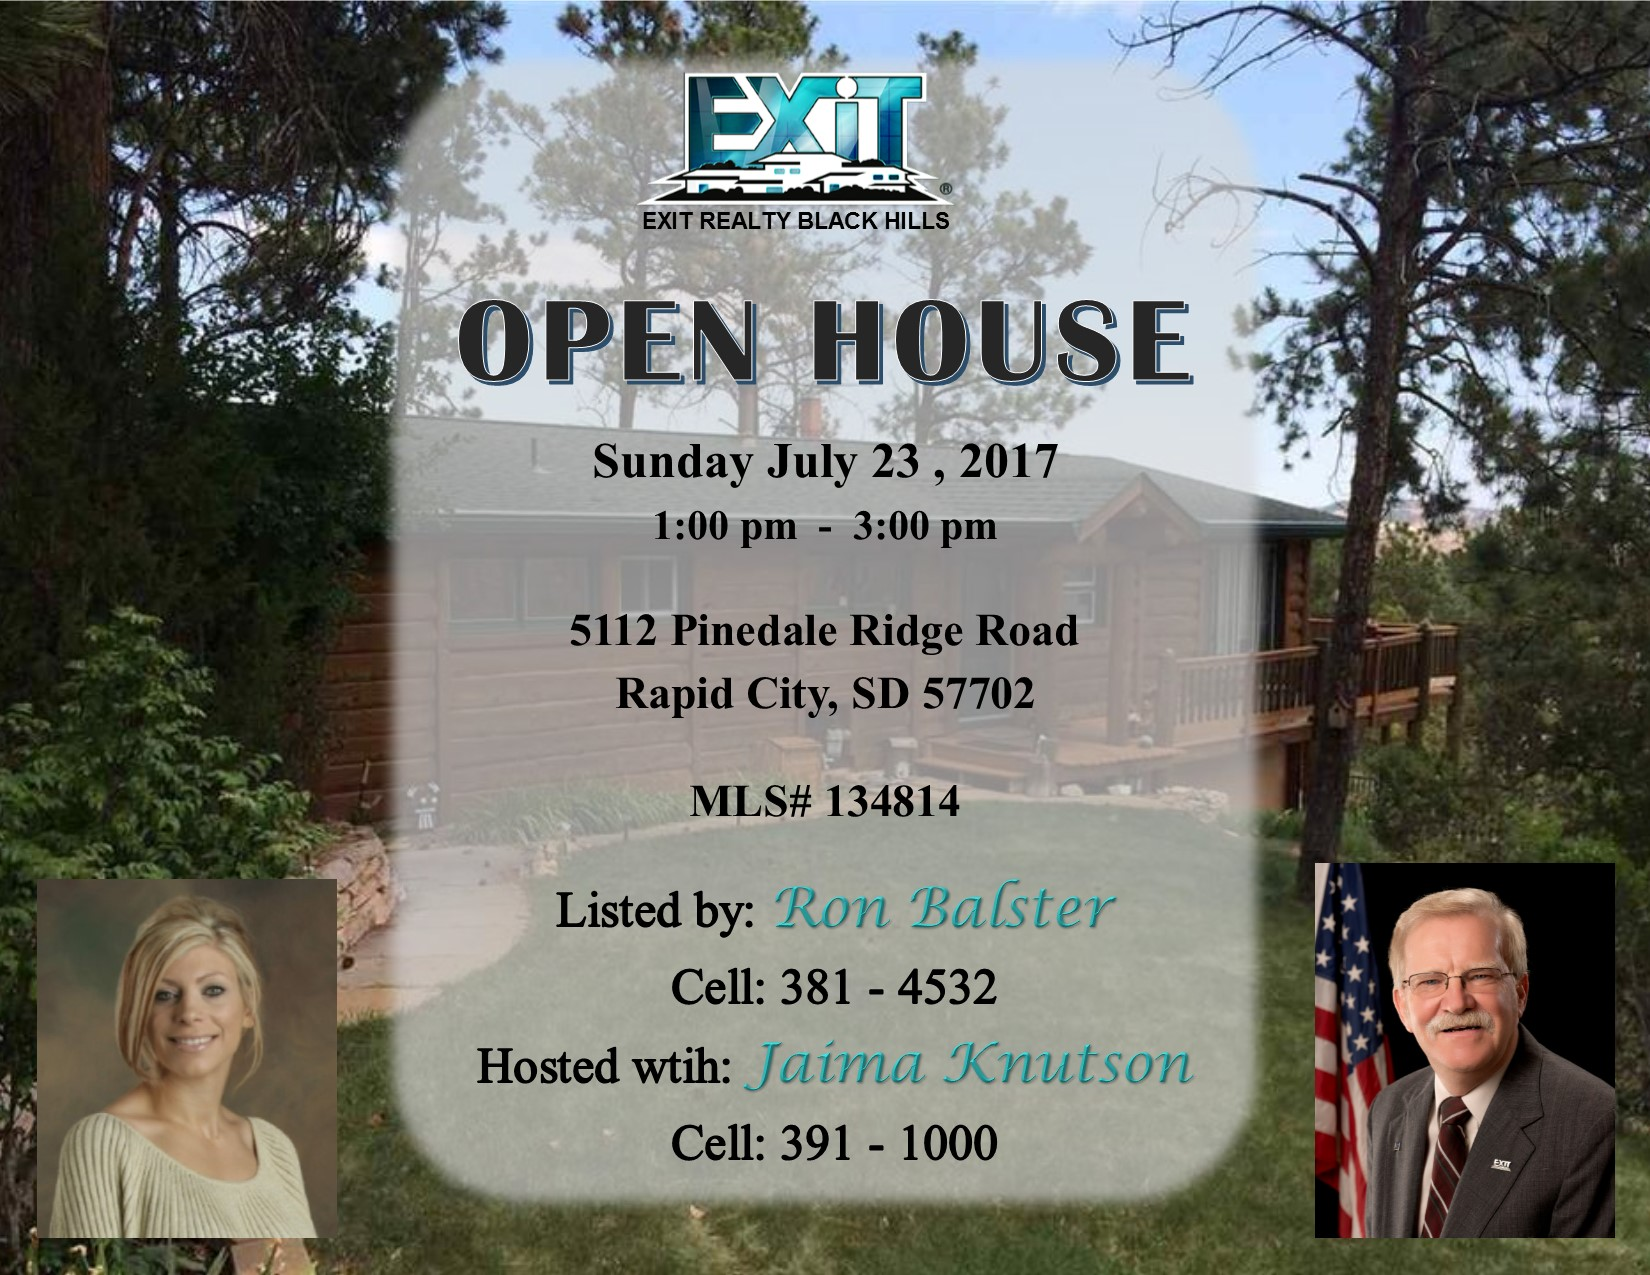 OPEN HOUSE for July 23, 2017